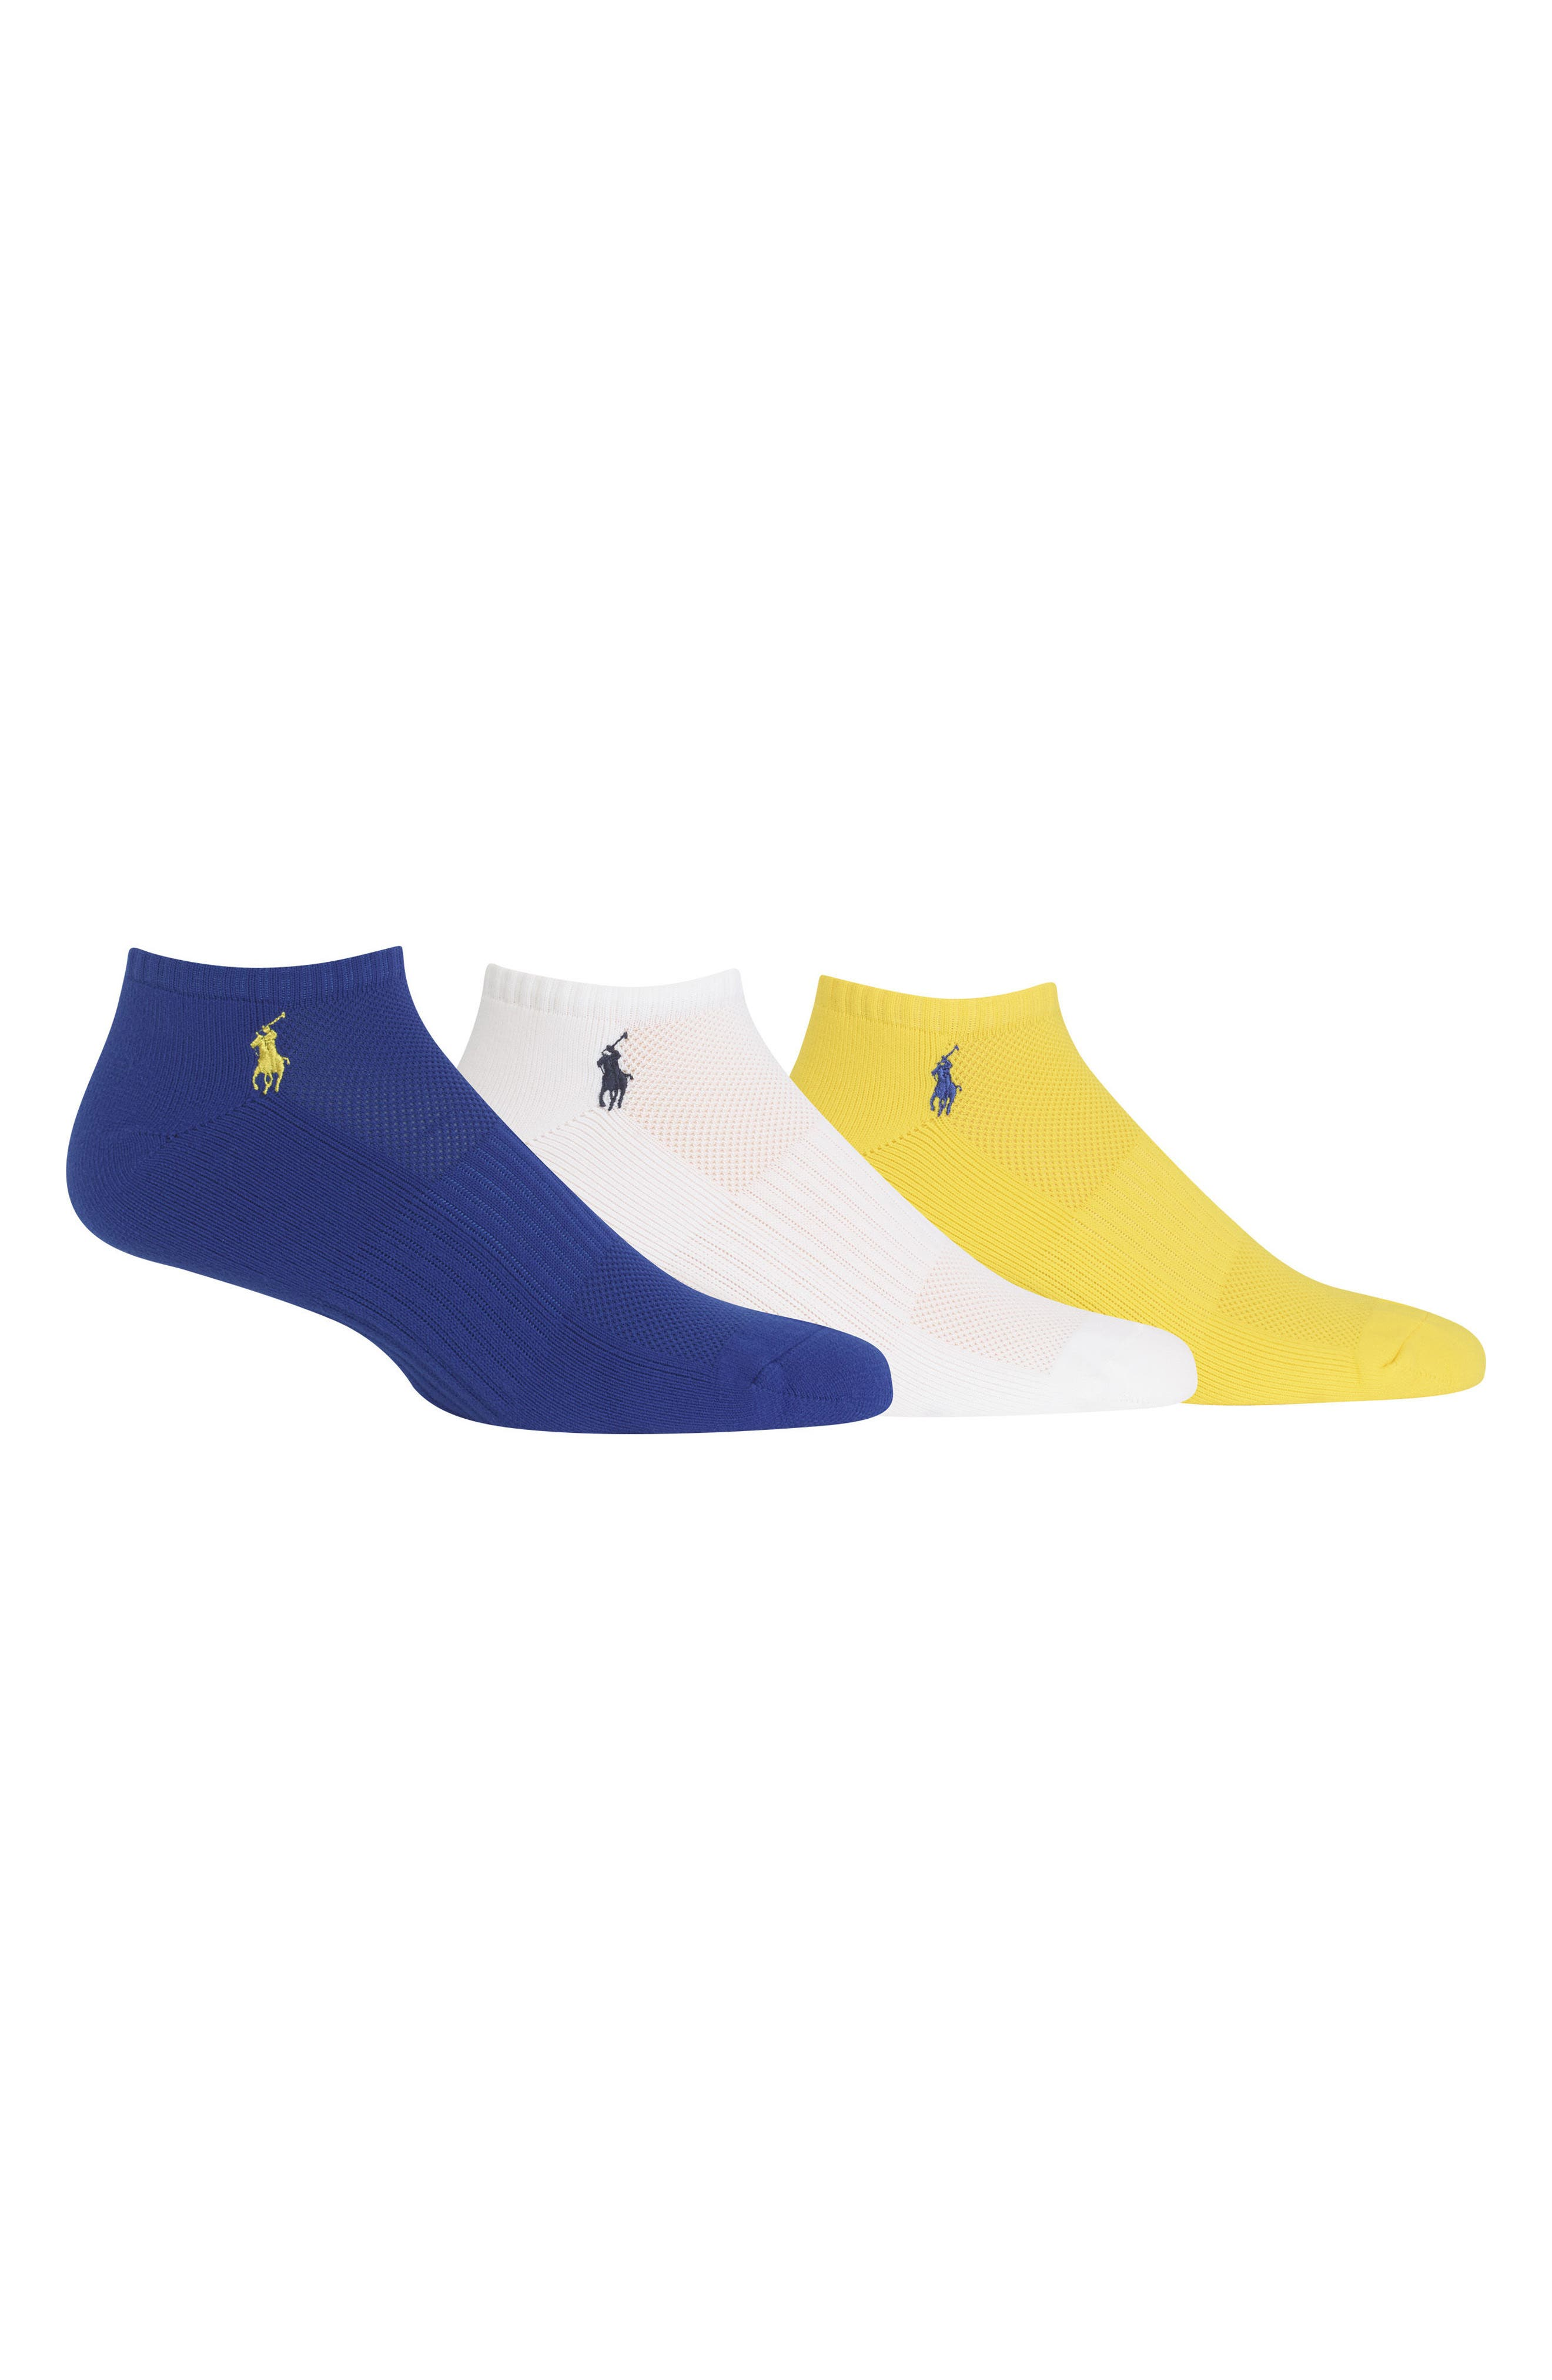 3-Pack Technical Sport Socks,                             Main thumbnail 1, color,                             Royal/ White/ Yellow